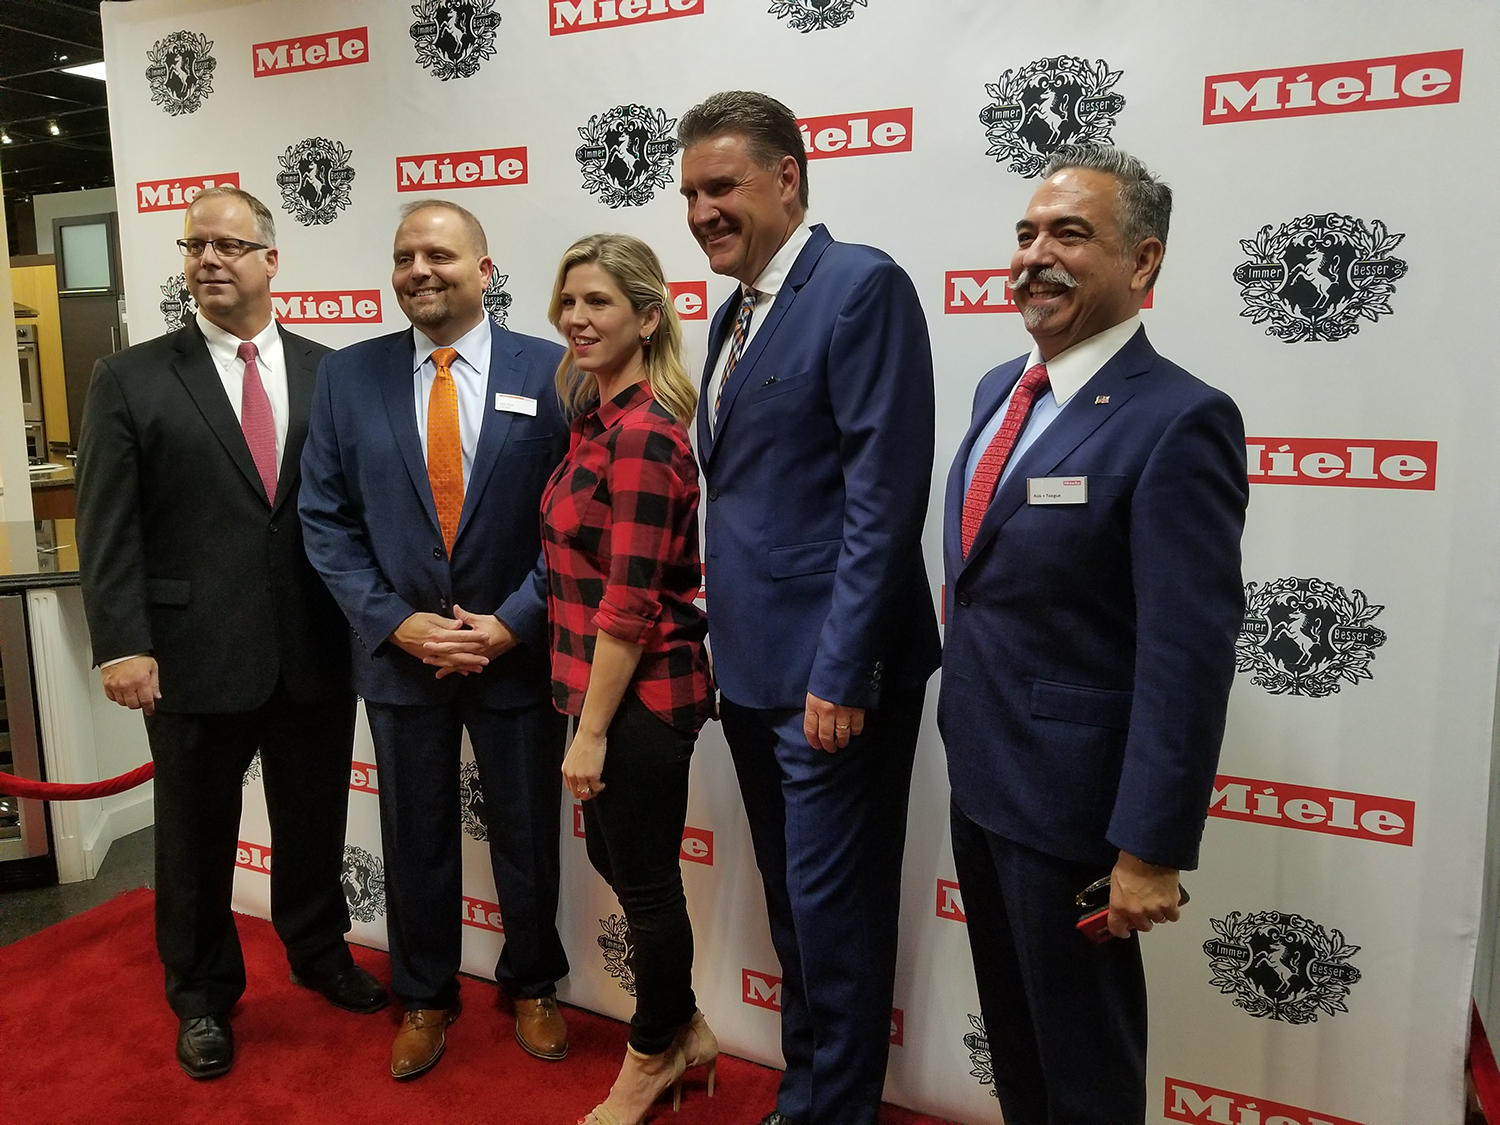 Miele Innovation Center Grand Opening